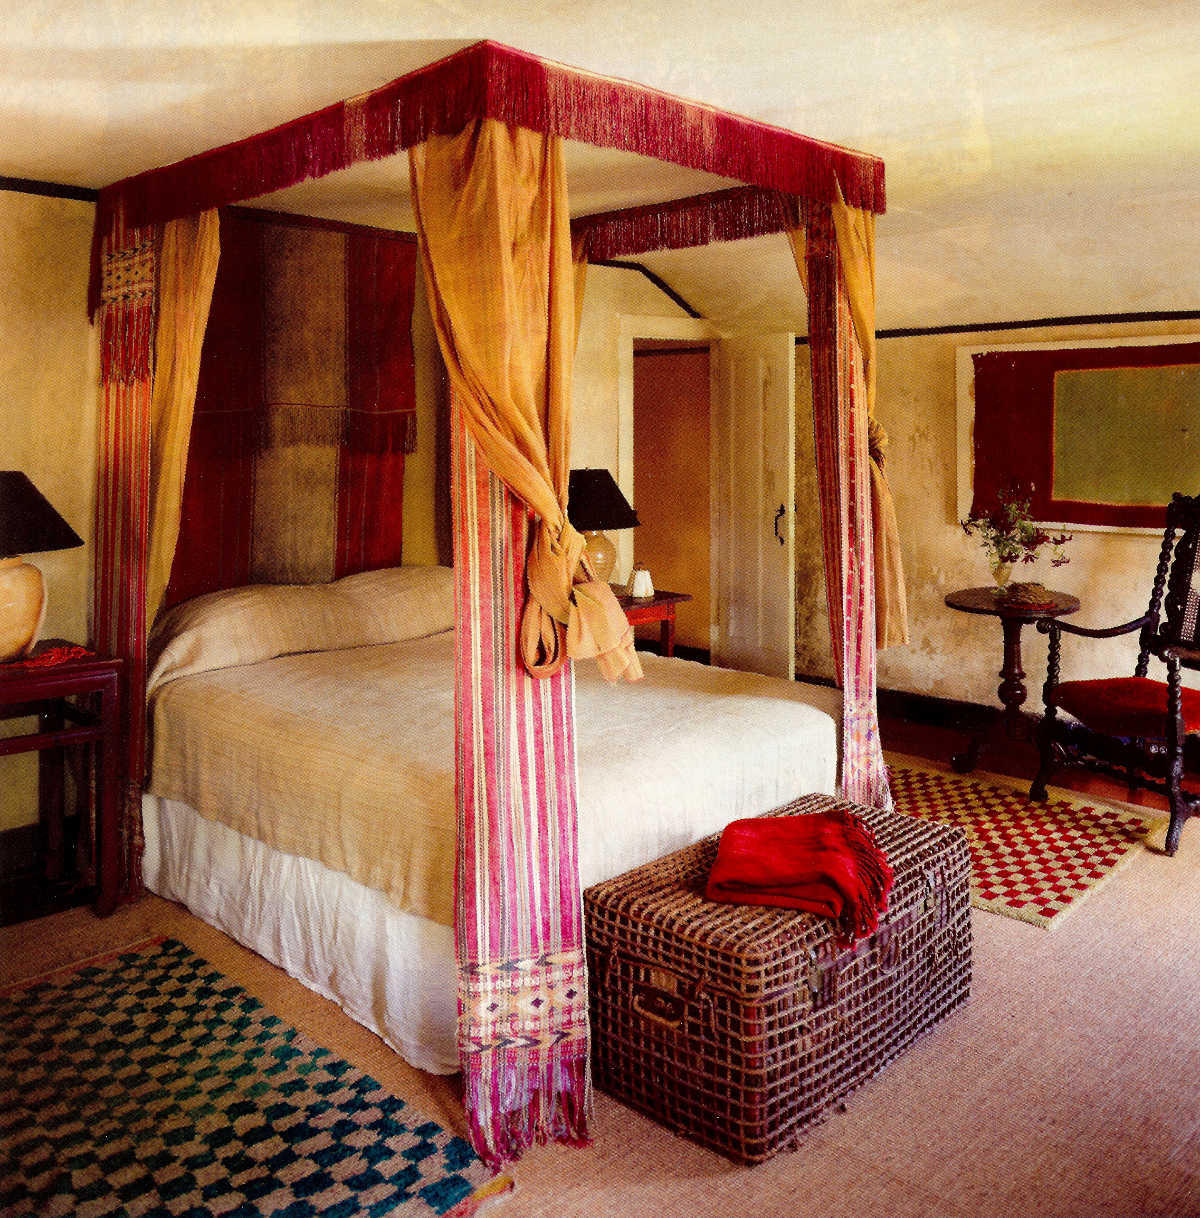 draped canopy beds - Four poster canopy bed draped in antique Asian textiles - Elle Decor via Atticmag